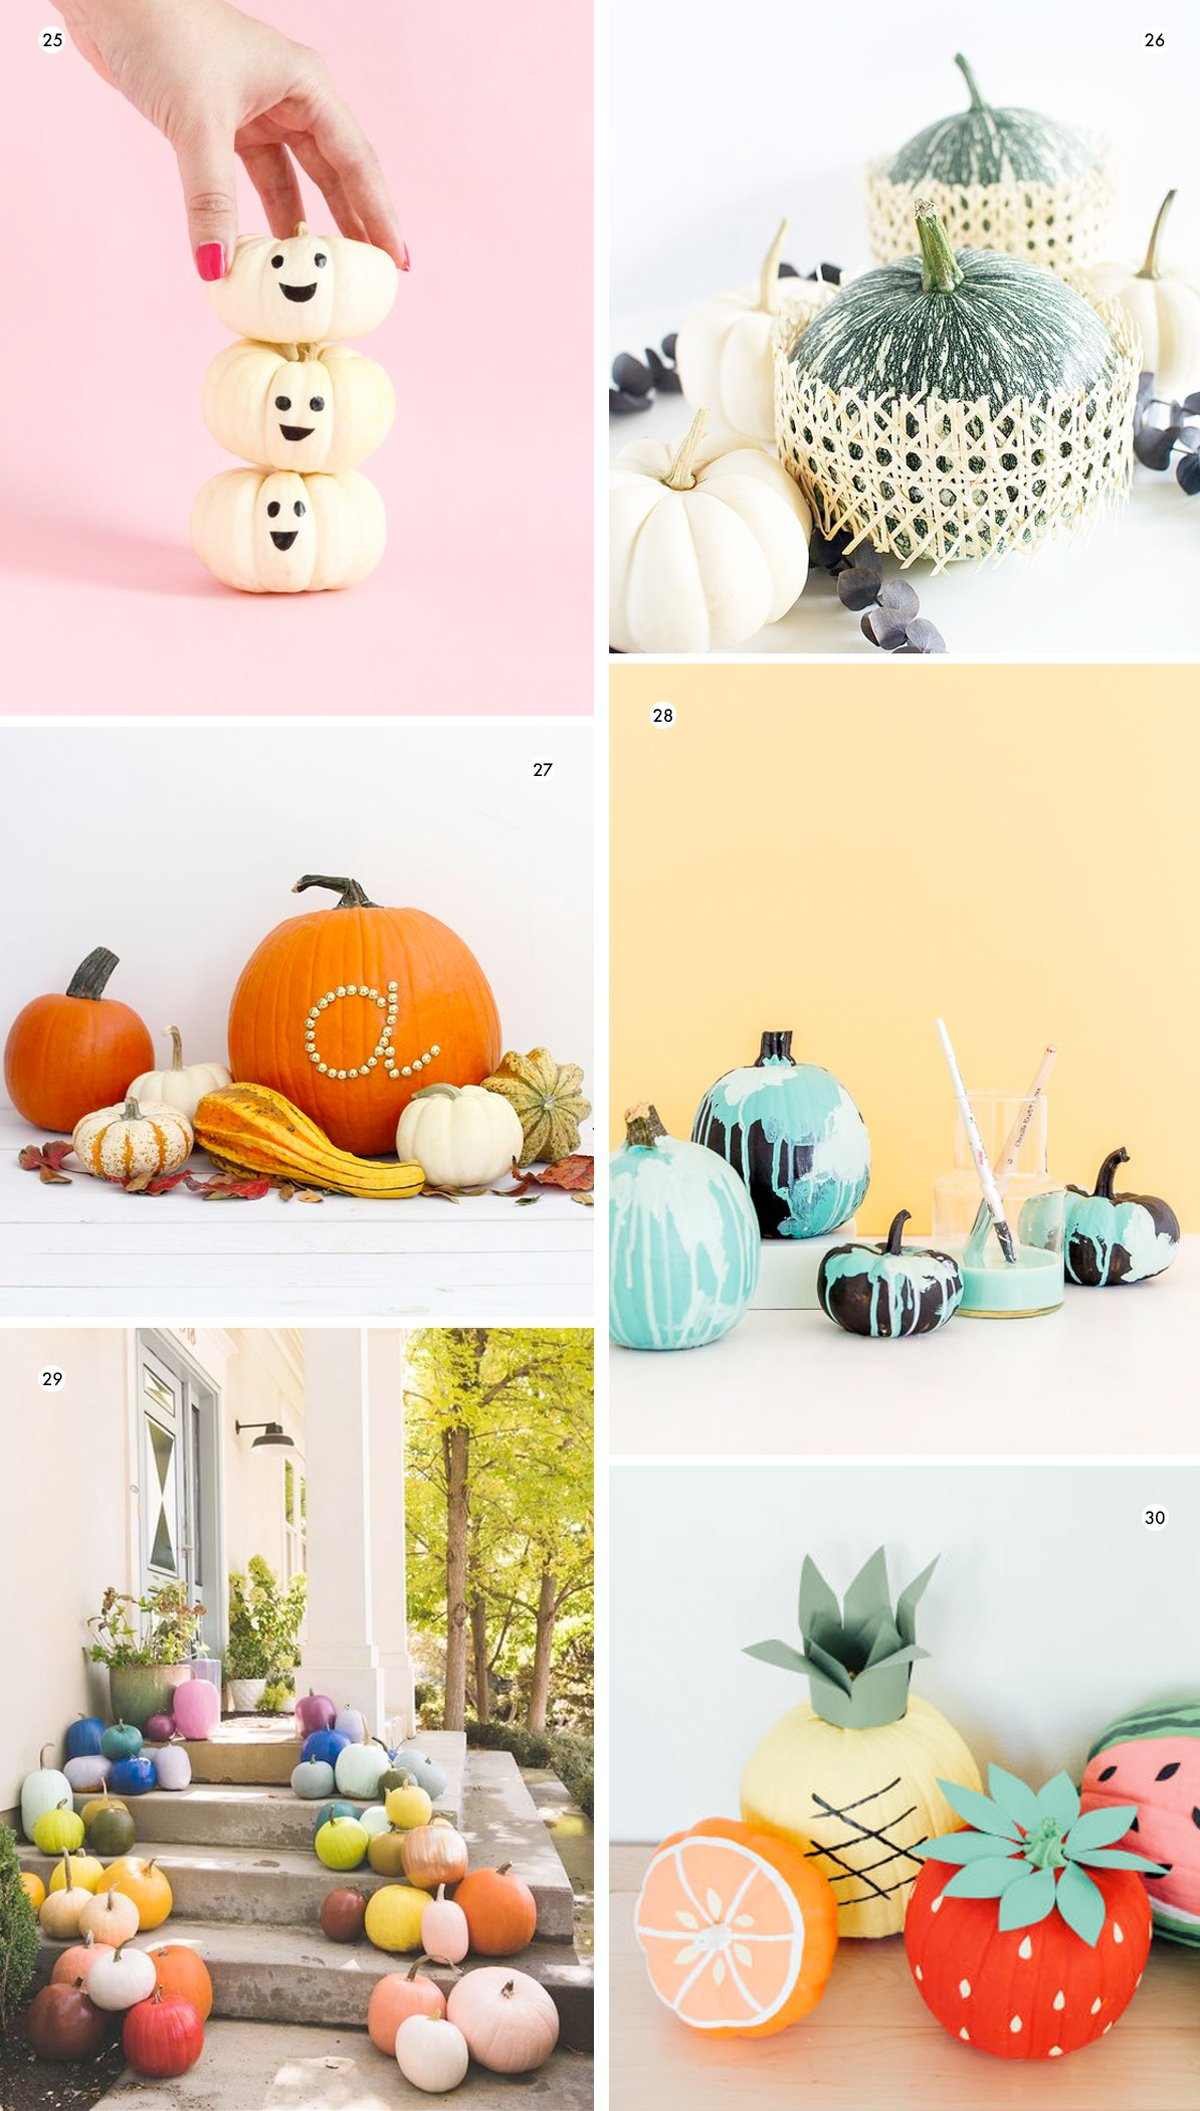 Image of various colorful and clever DIY pumpkin decorating projects (part of a roundup of nearly 40 pumpkin ideas)